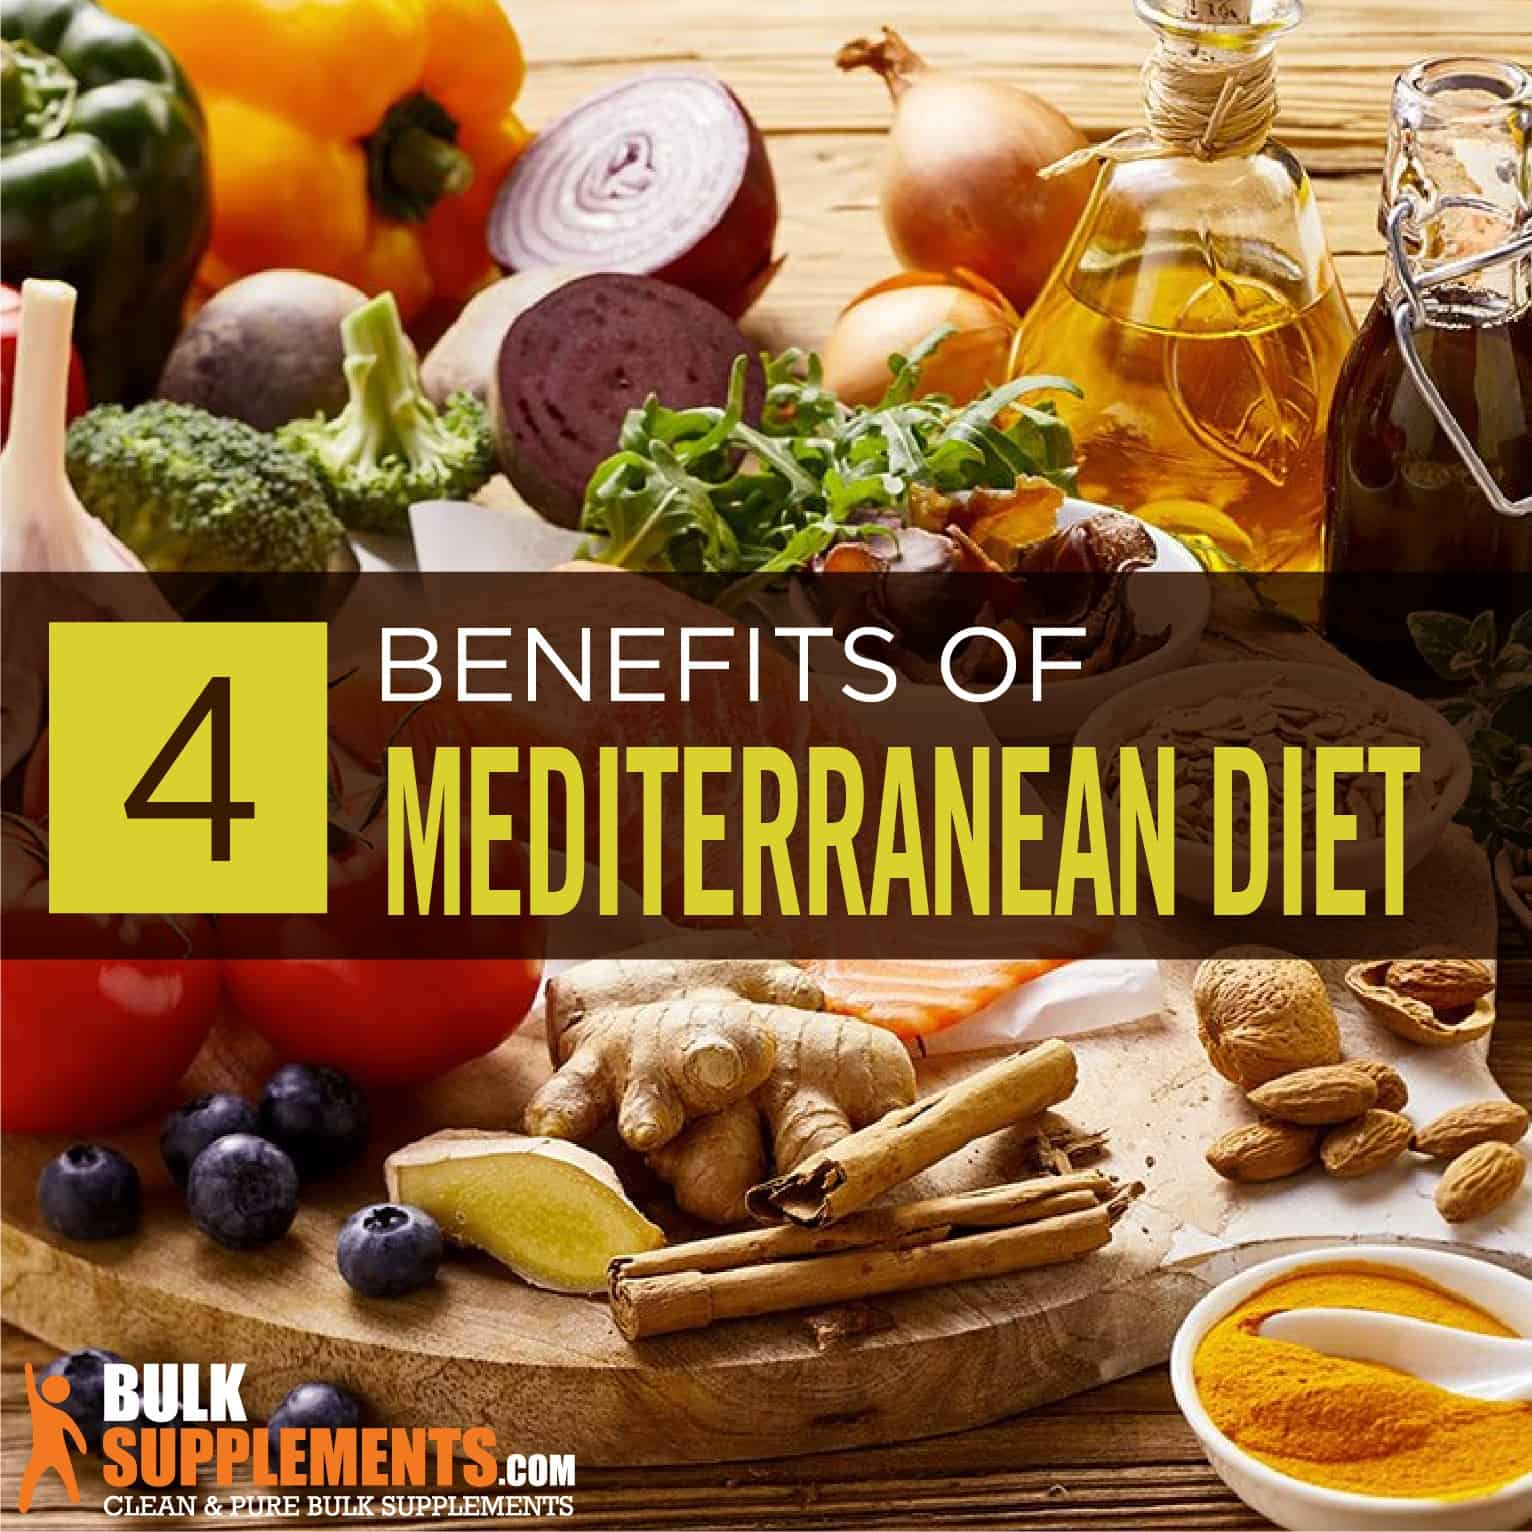 Mediterranean Diet: Benefits, What to Eat & What to Avoid